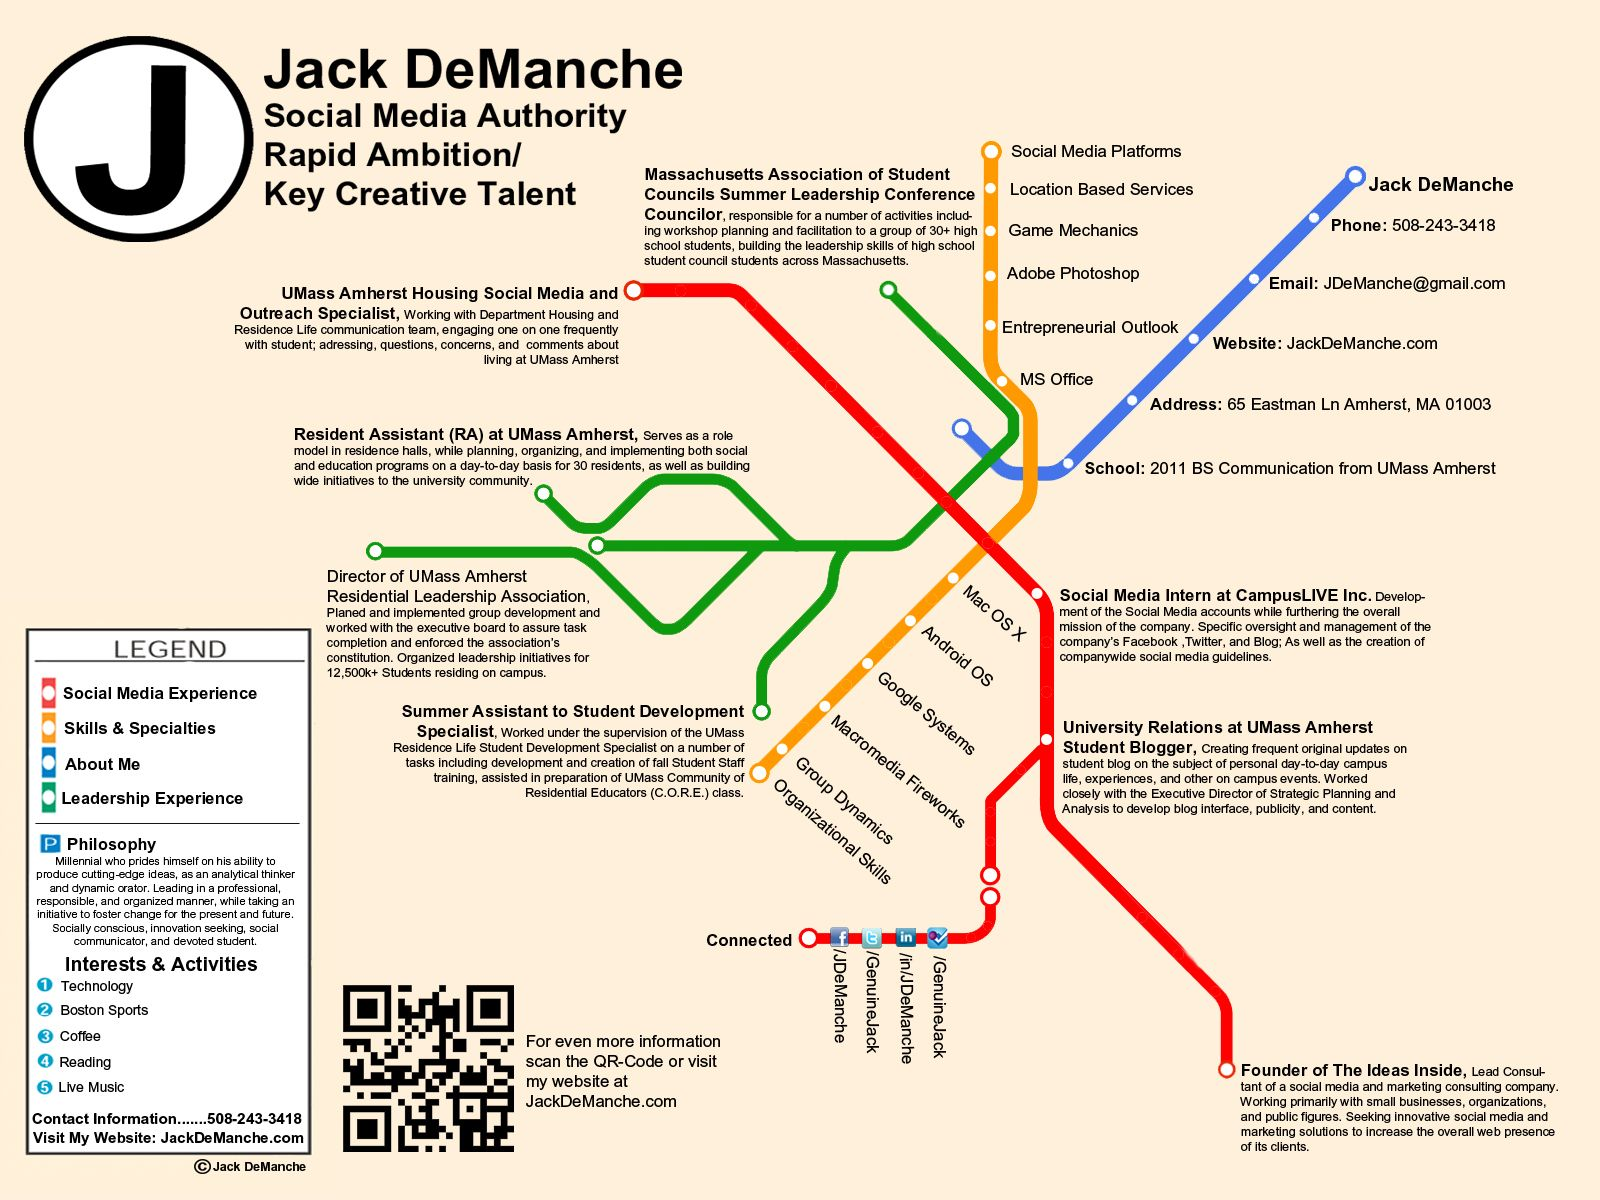 Custom Subway Map Creator.Subway Map Jackdemancheresume Jobs Creative Resume Infographic